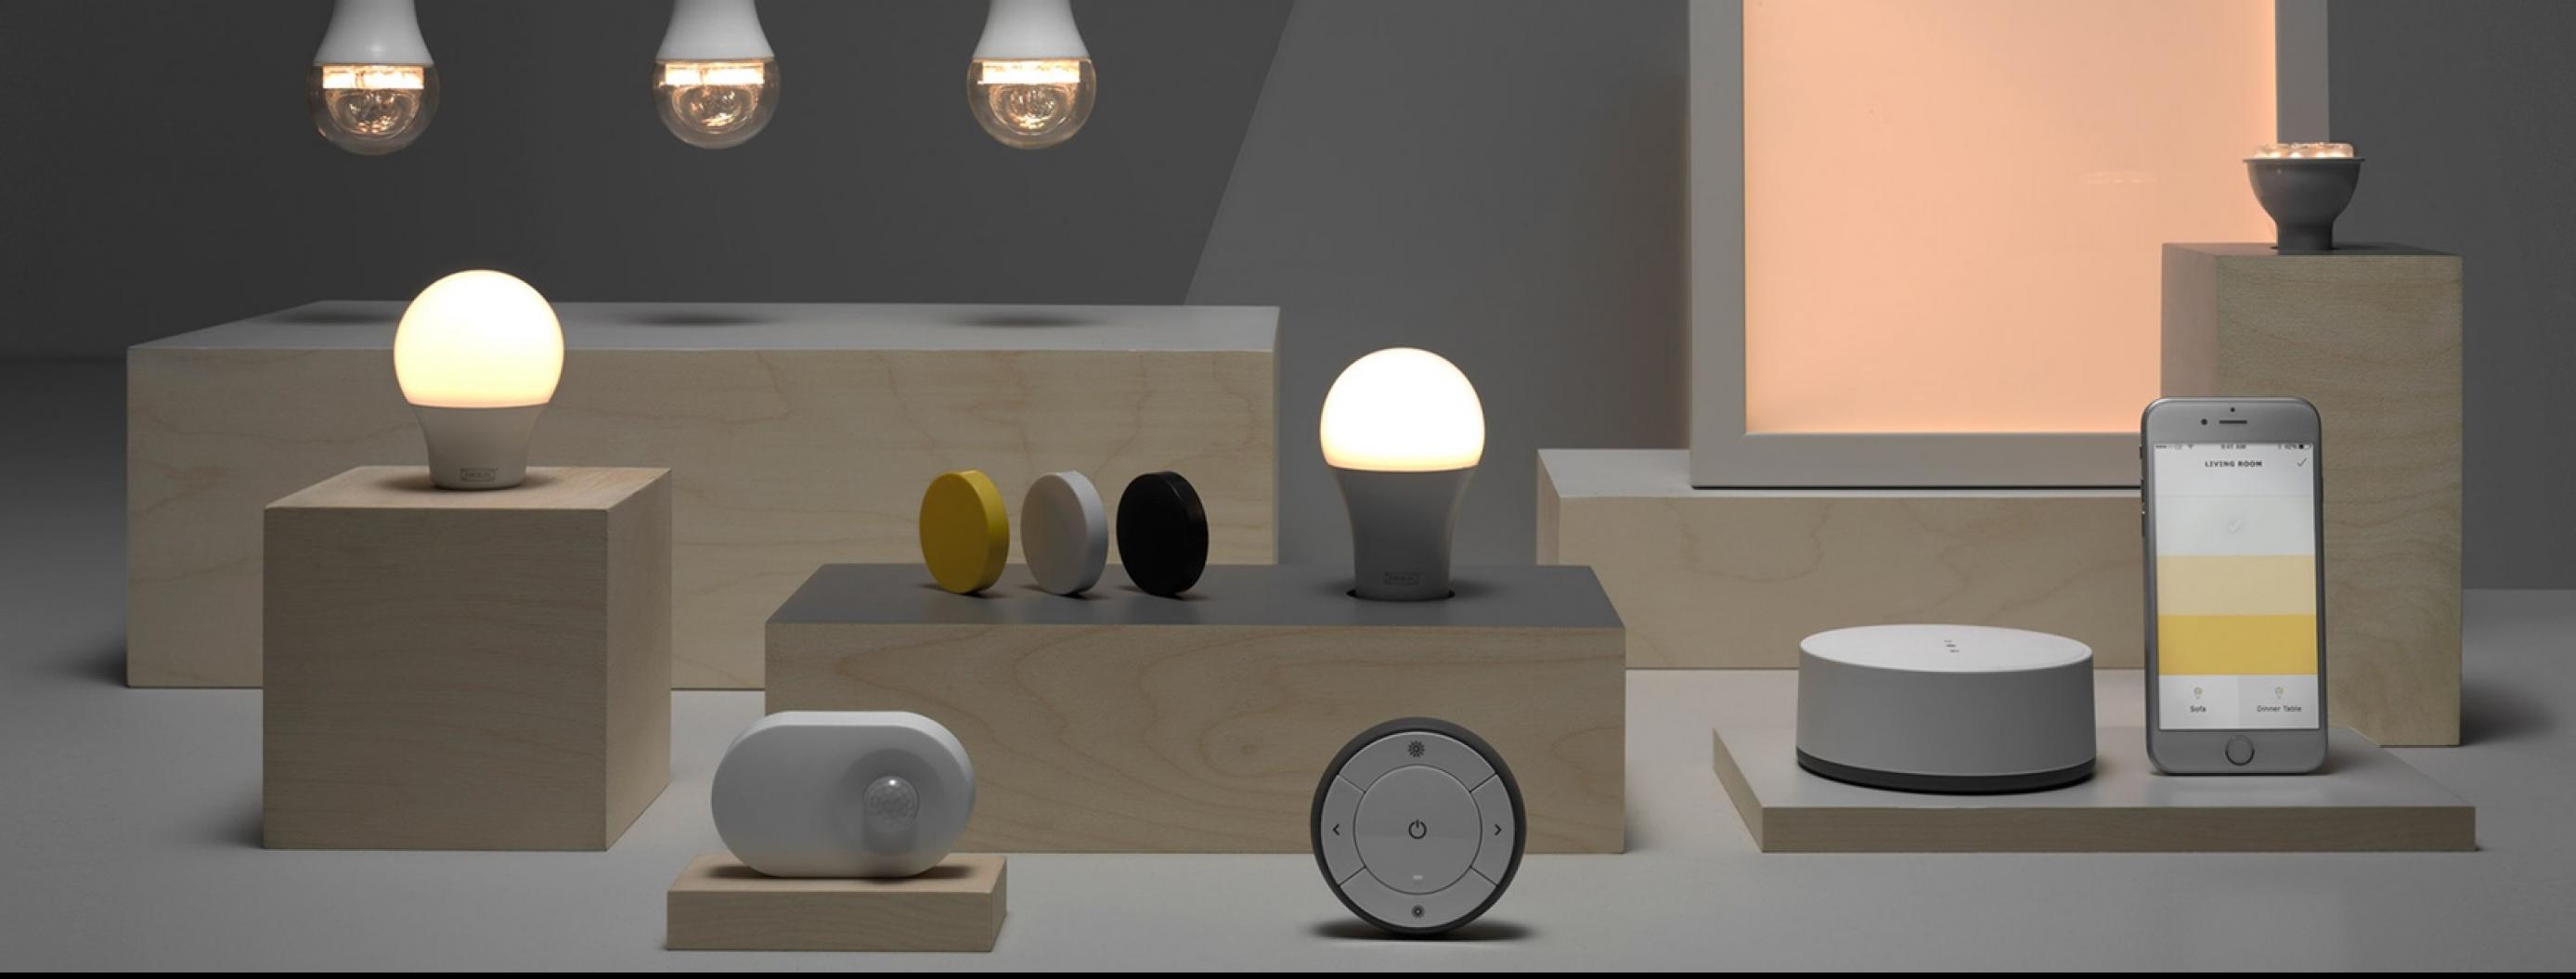 Your Smart Home Needs these Voice-Controlled Lights from